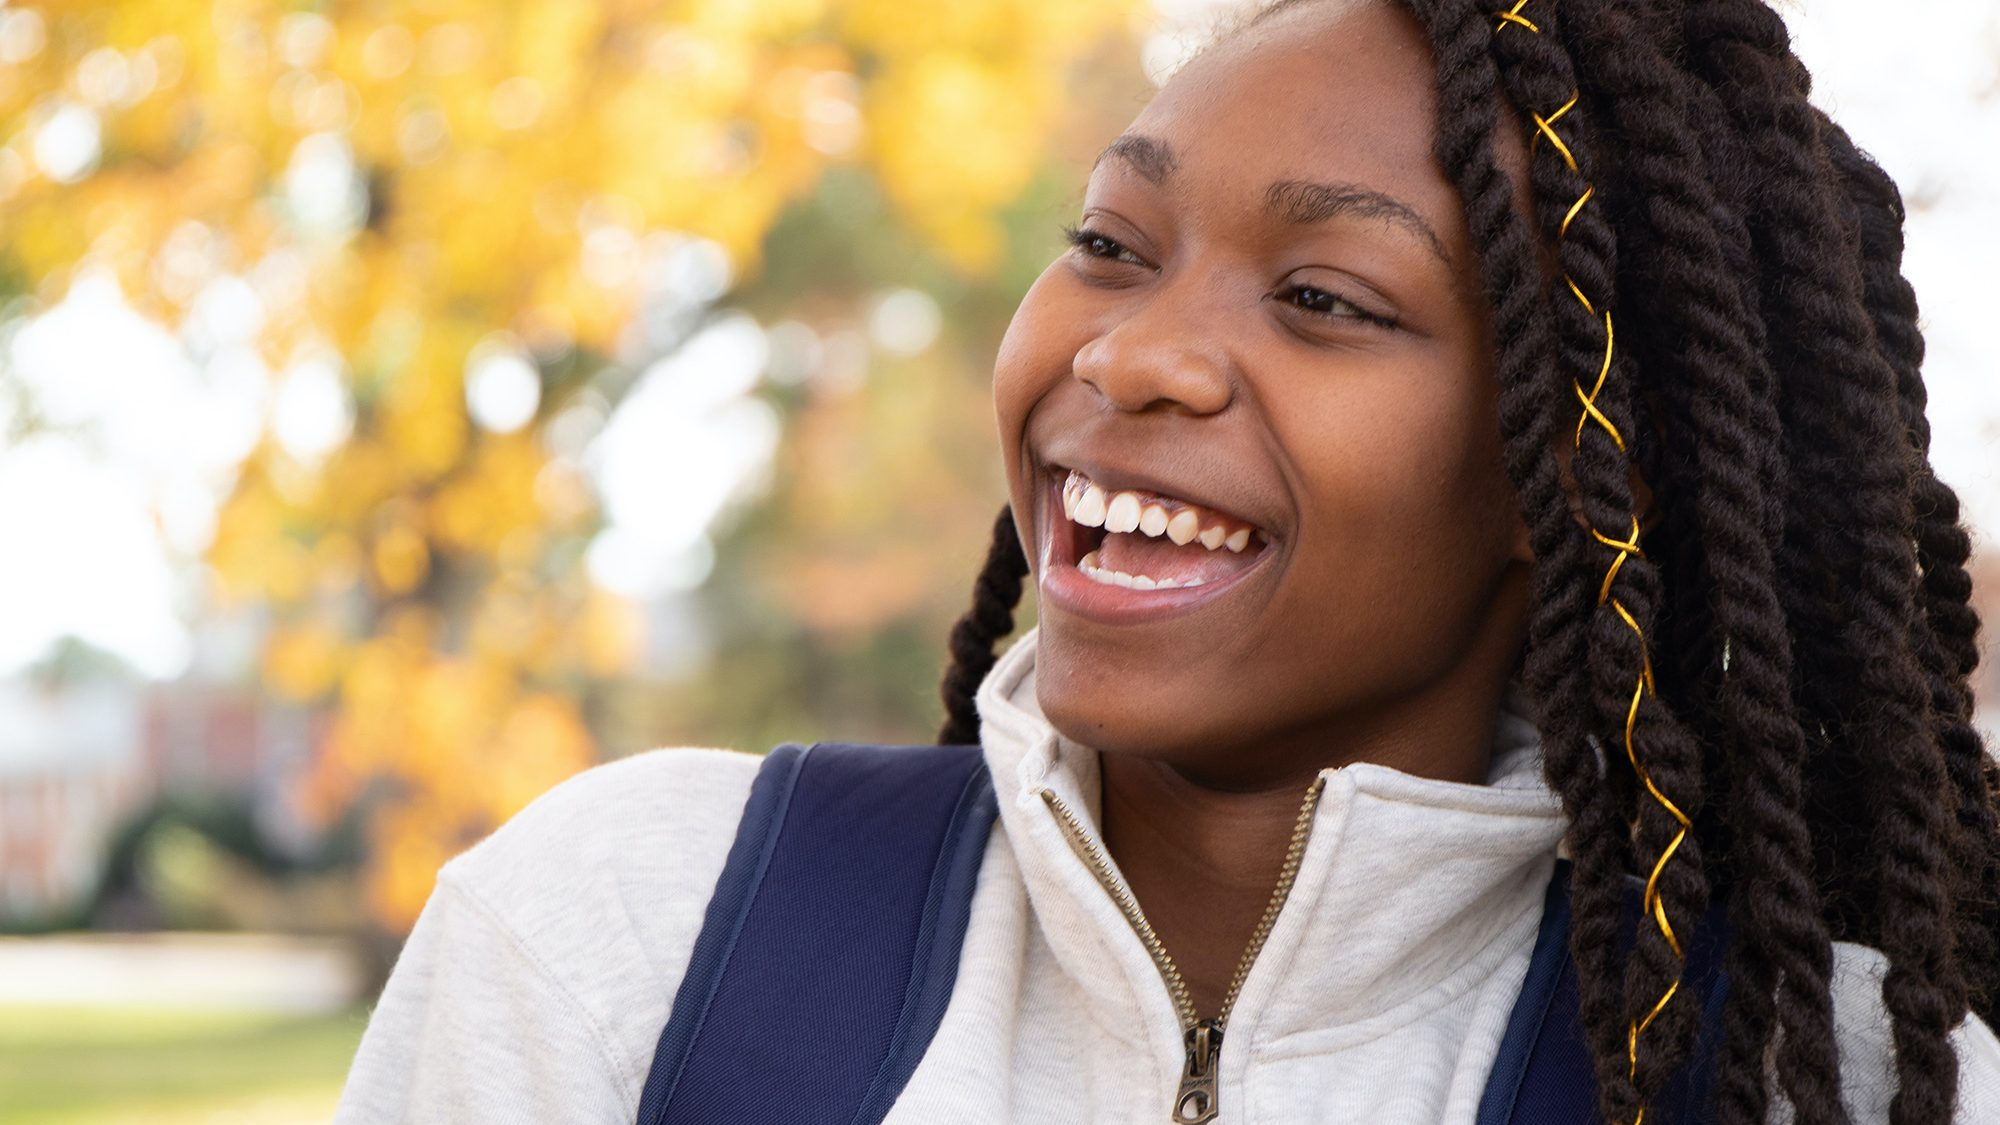 Young Black woman smiling.